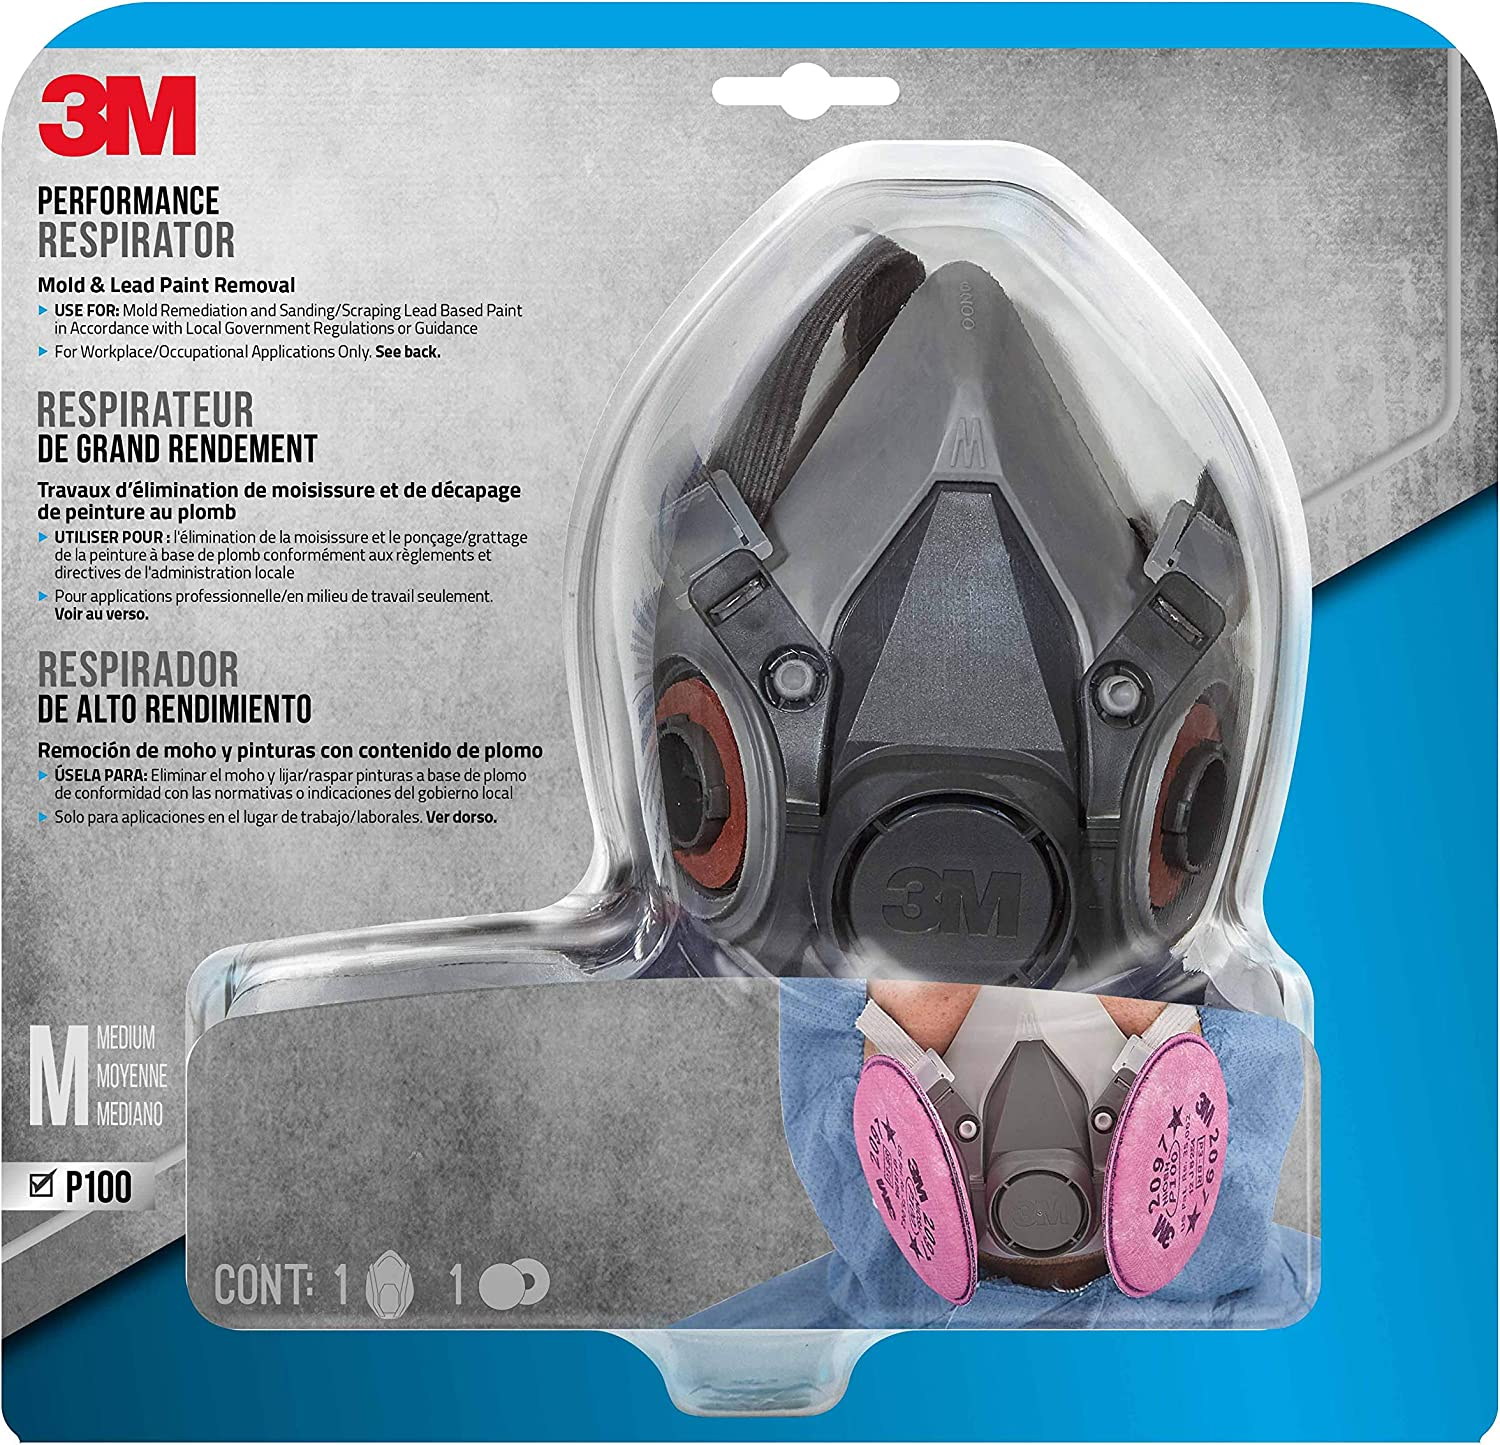 Respirator Removal Mold 3m - And Lead 6297pa1-a Paint Medium